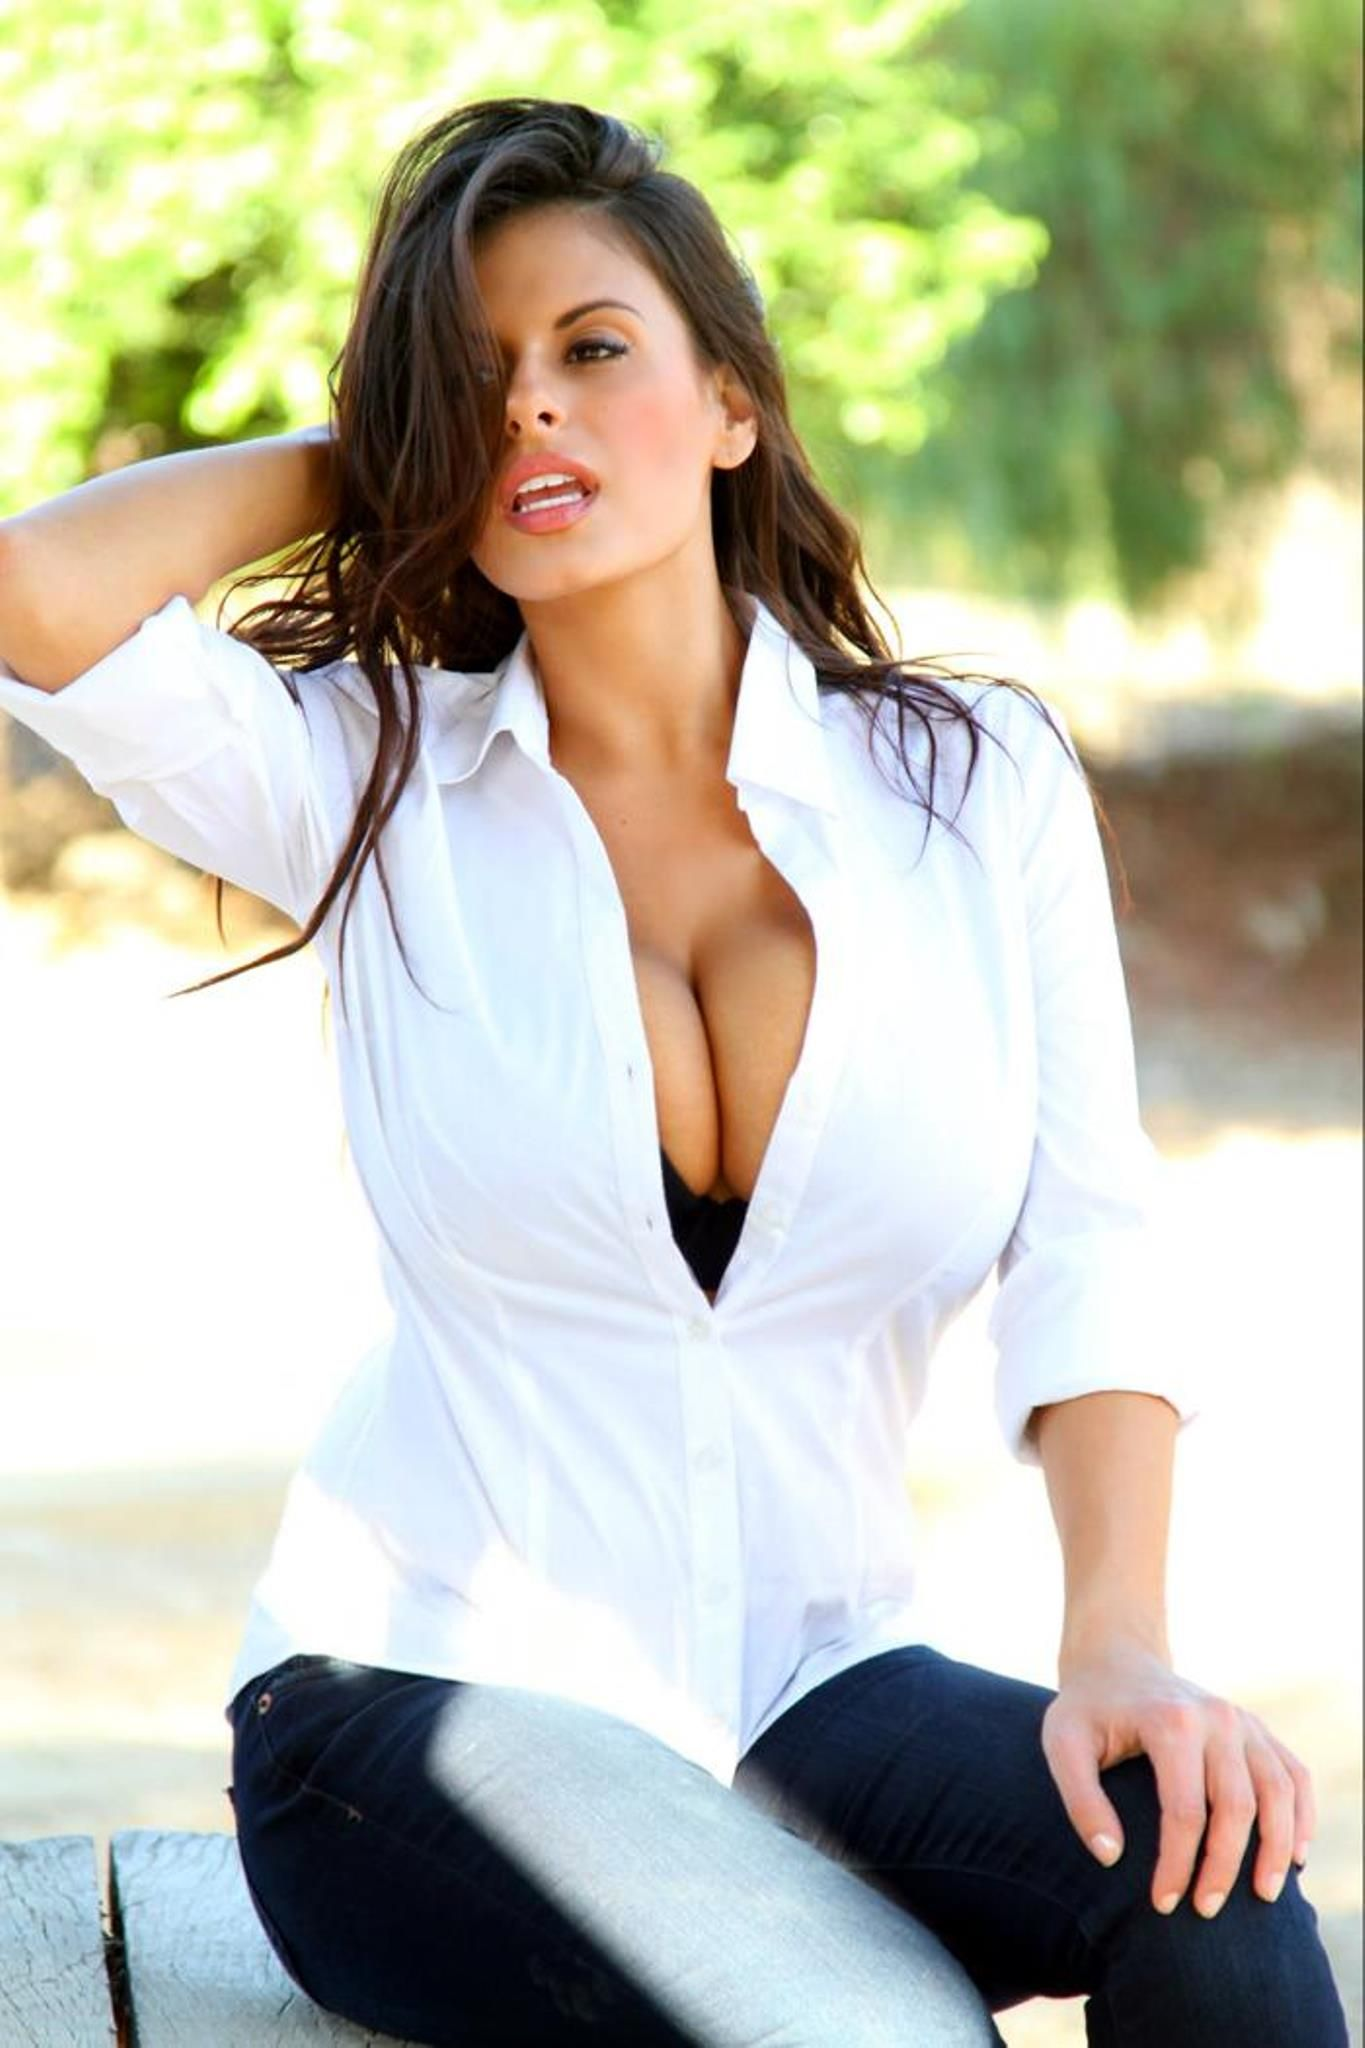 Wendy Fiore Nude Photos 9